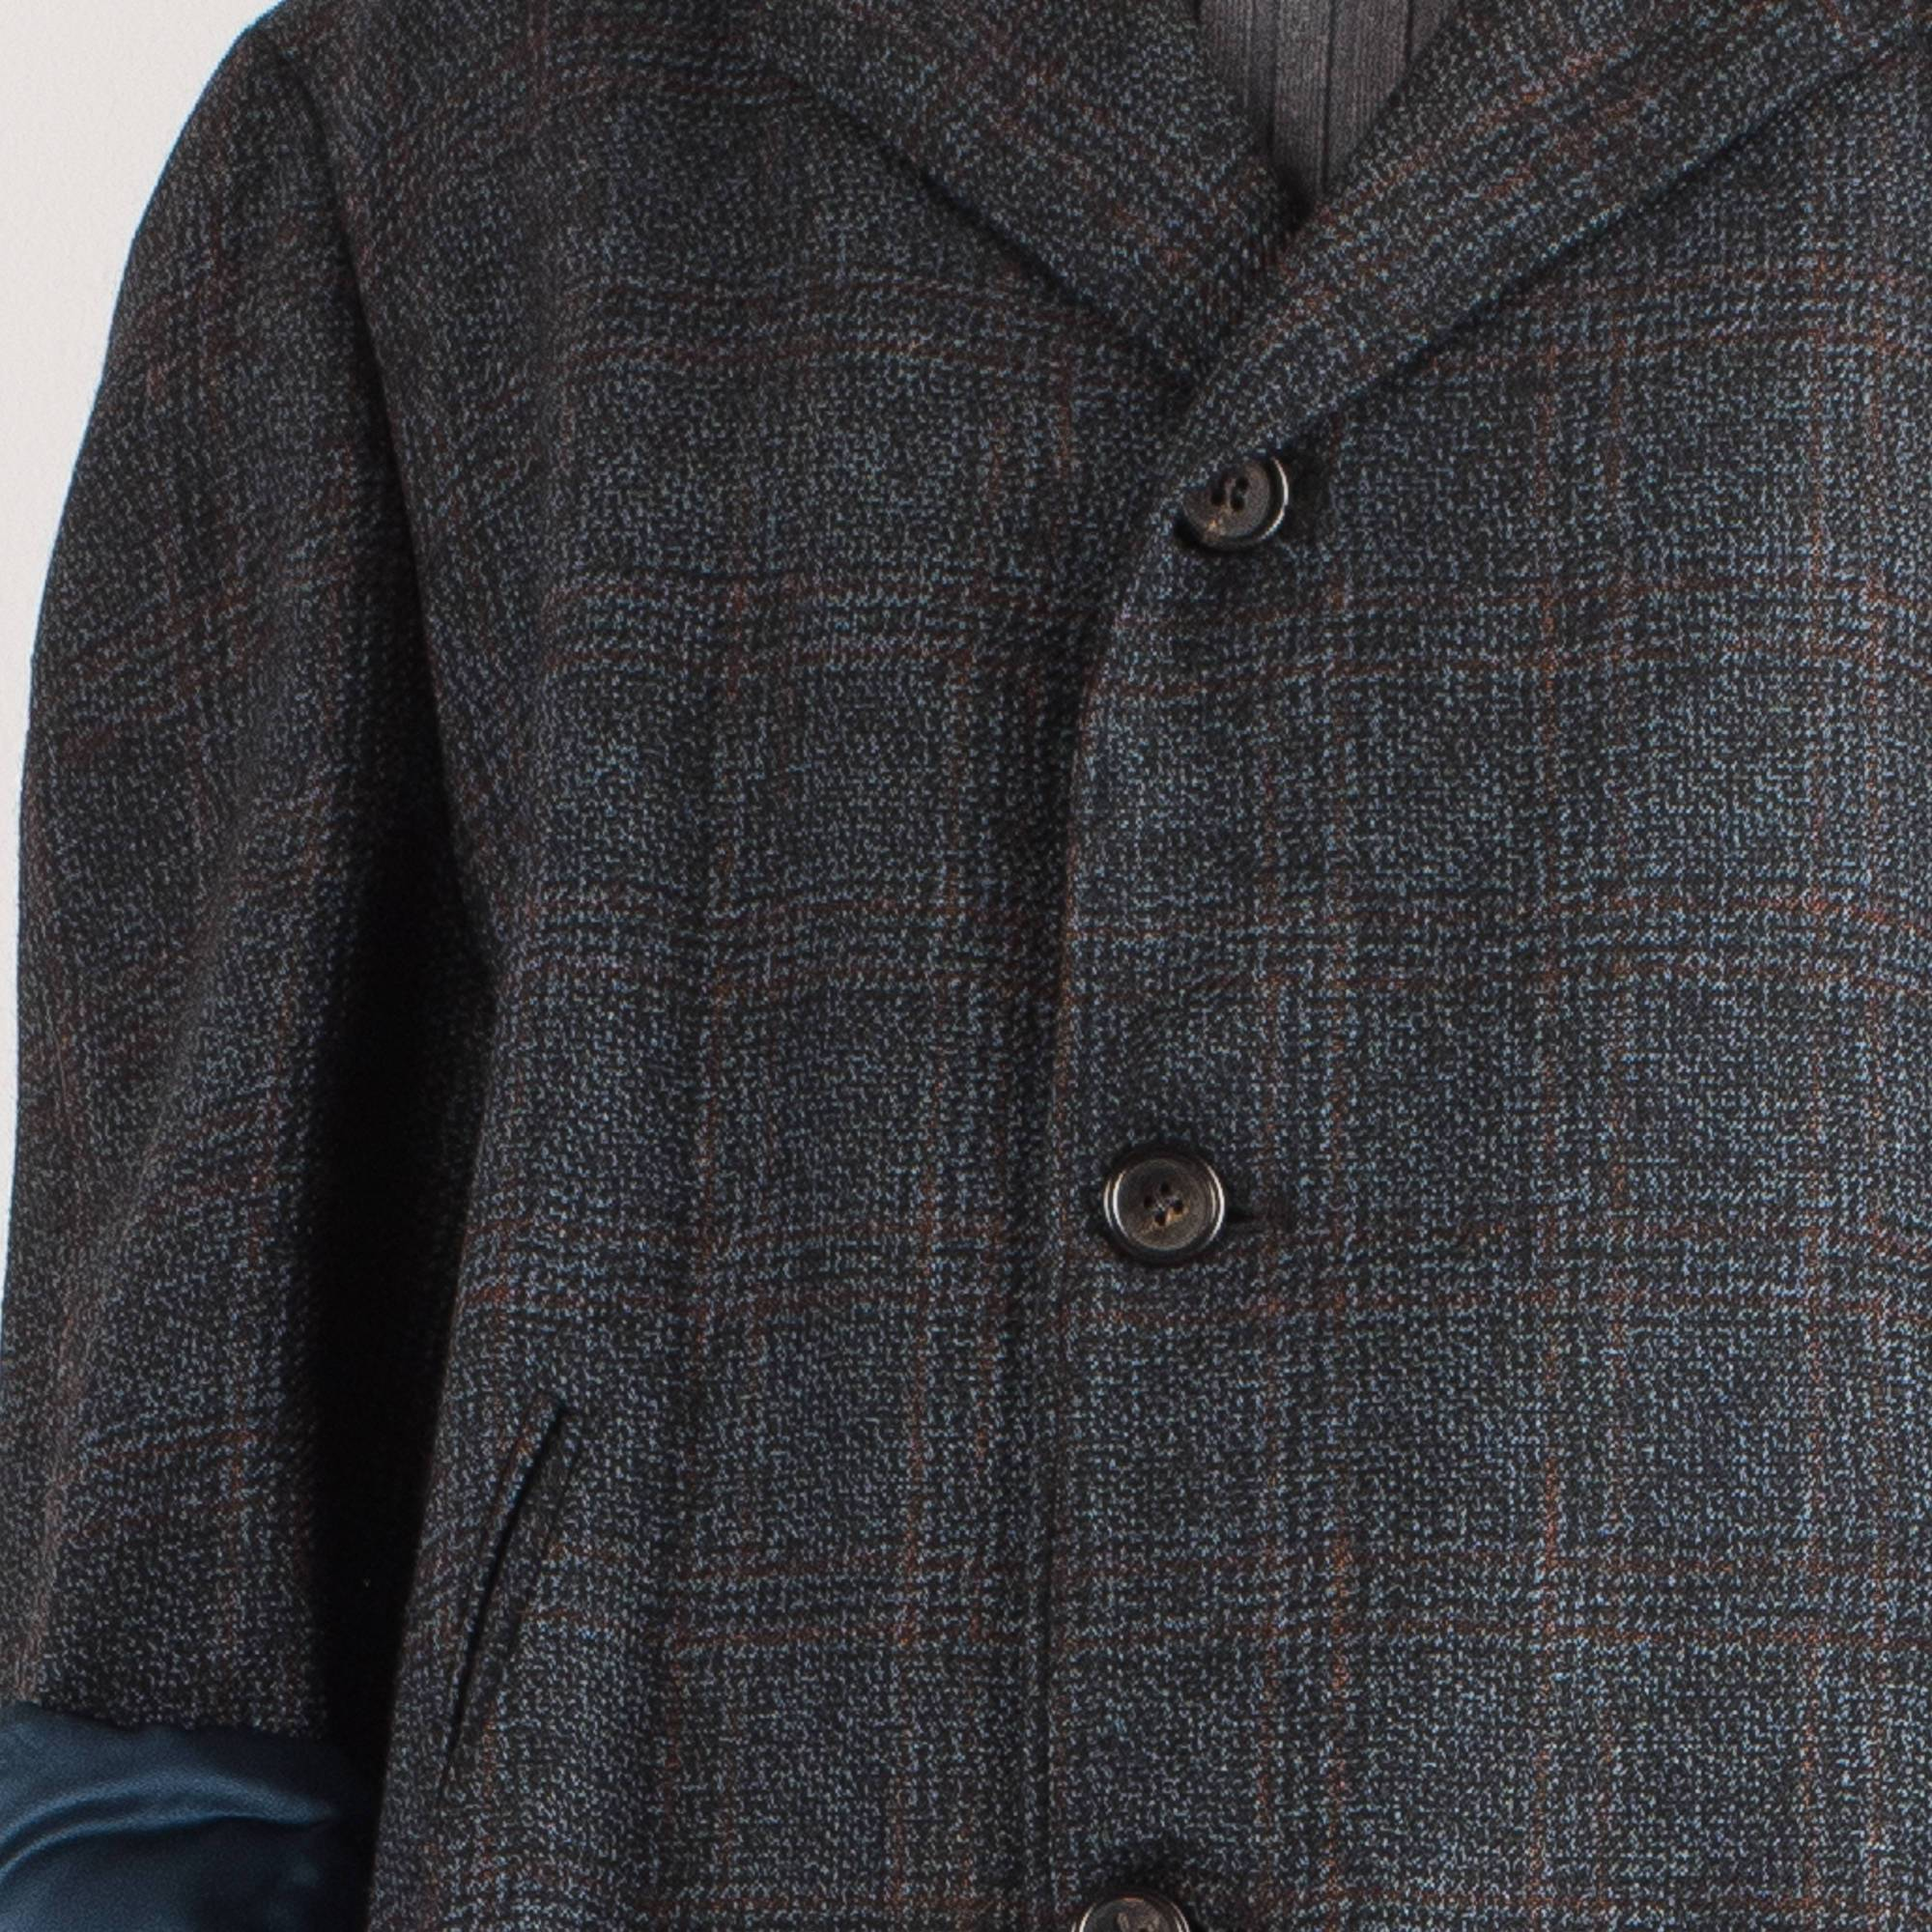 Vintage Charcoal Tweed Oversized Wool Coat Blazer / S - Closed Caption